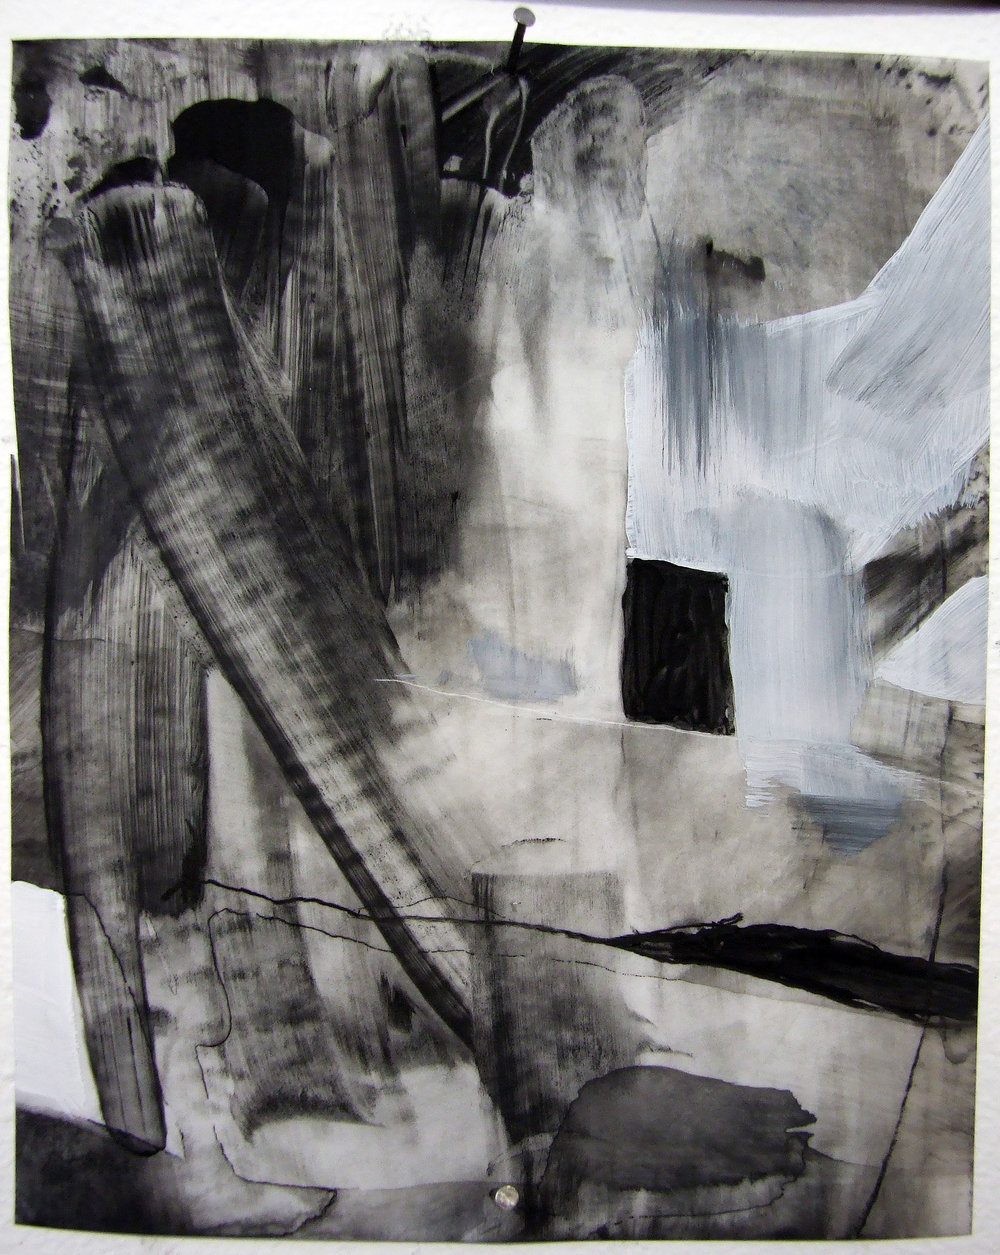 N.o 5, charcoal and gesso on mylar, 2012